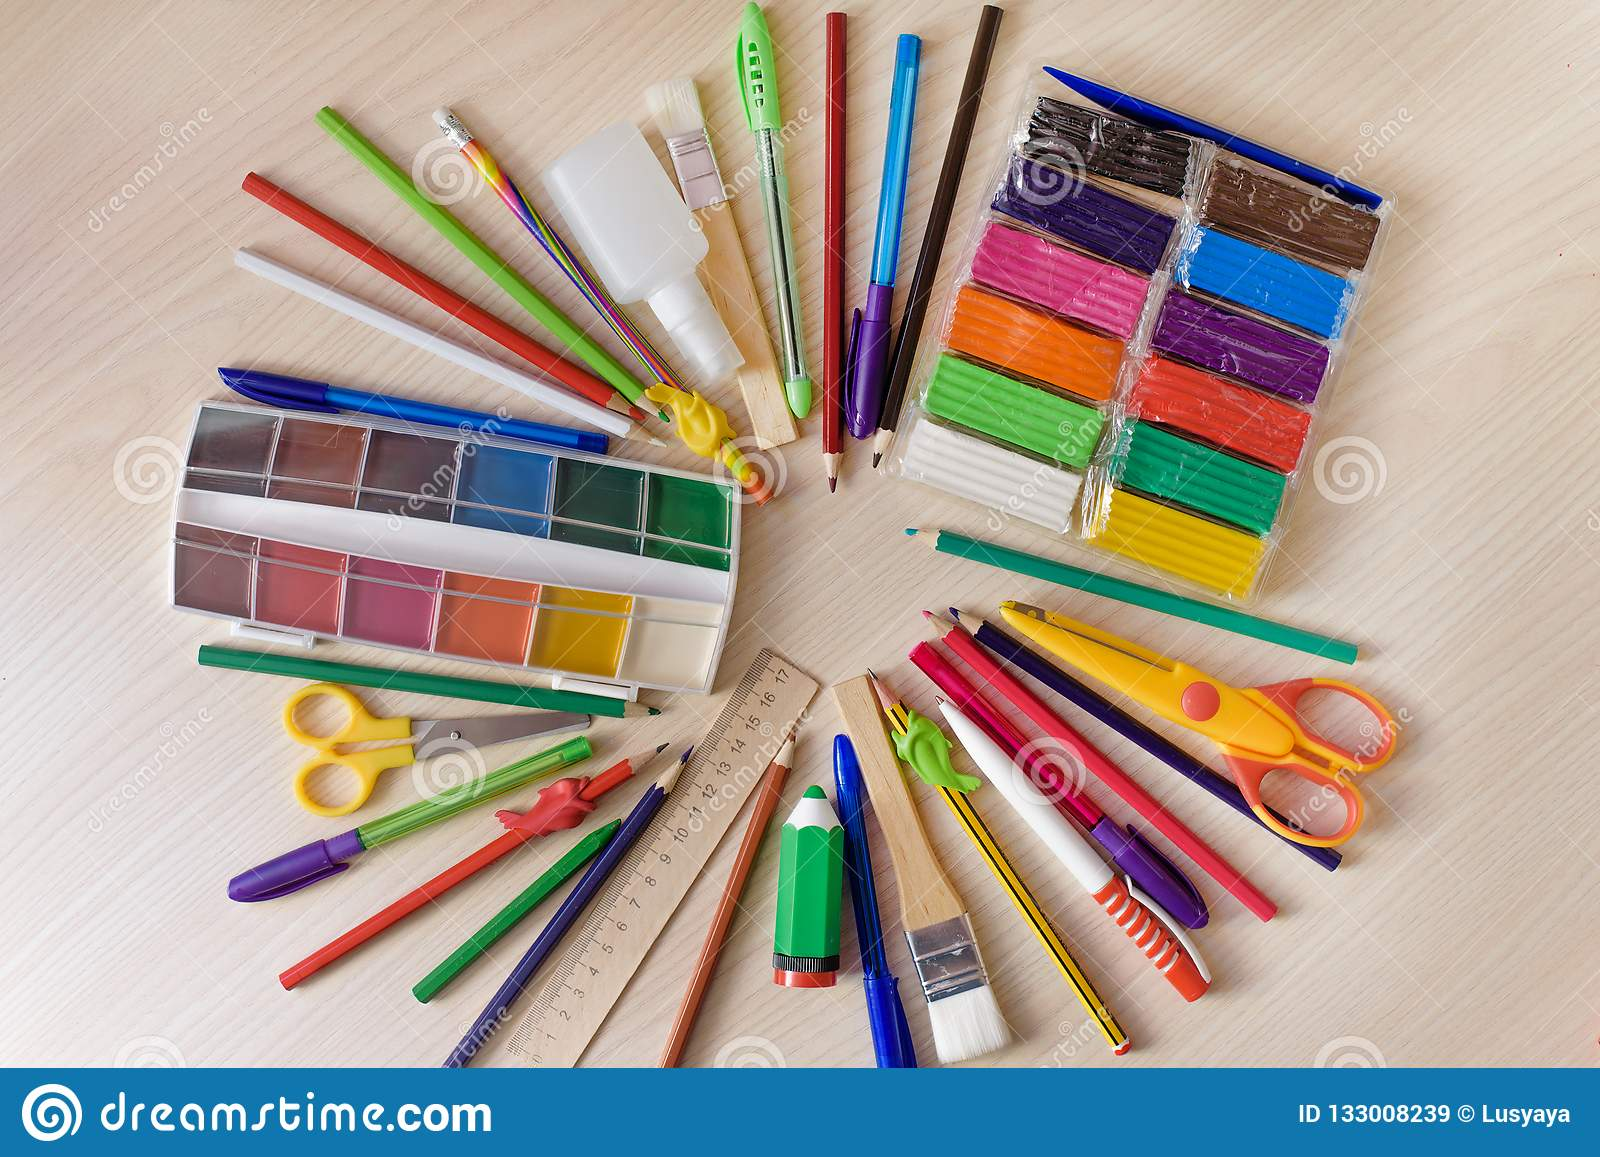 Back To School Concept Writing Supplies On The Table